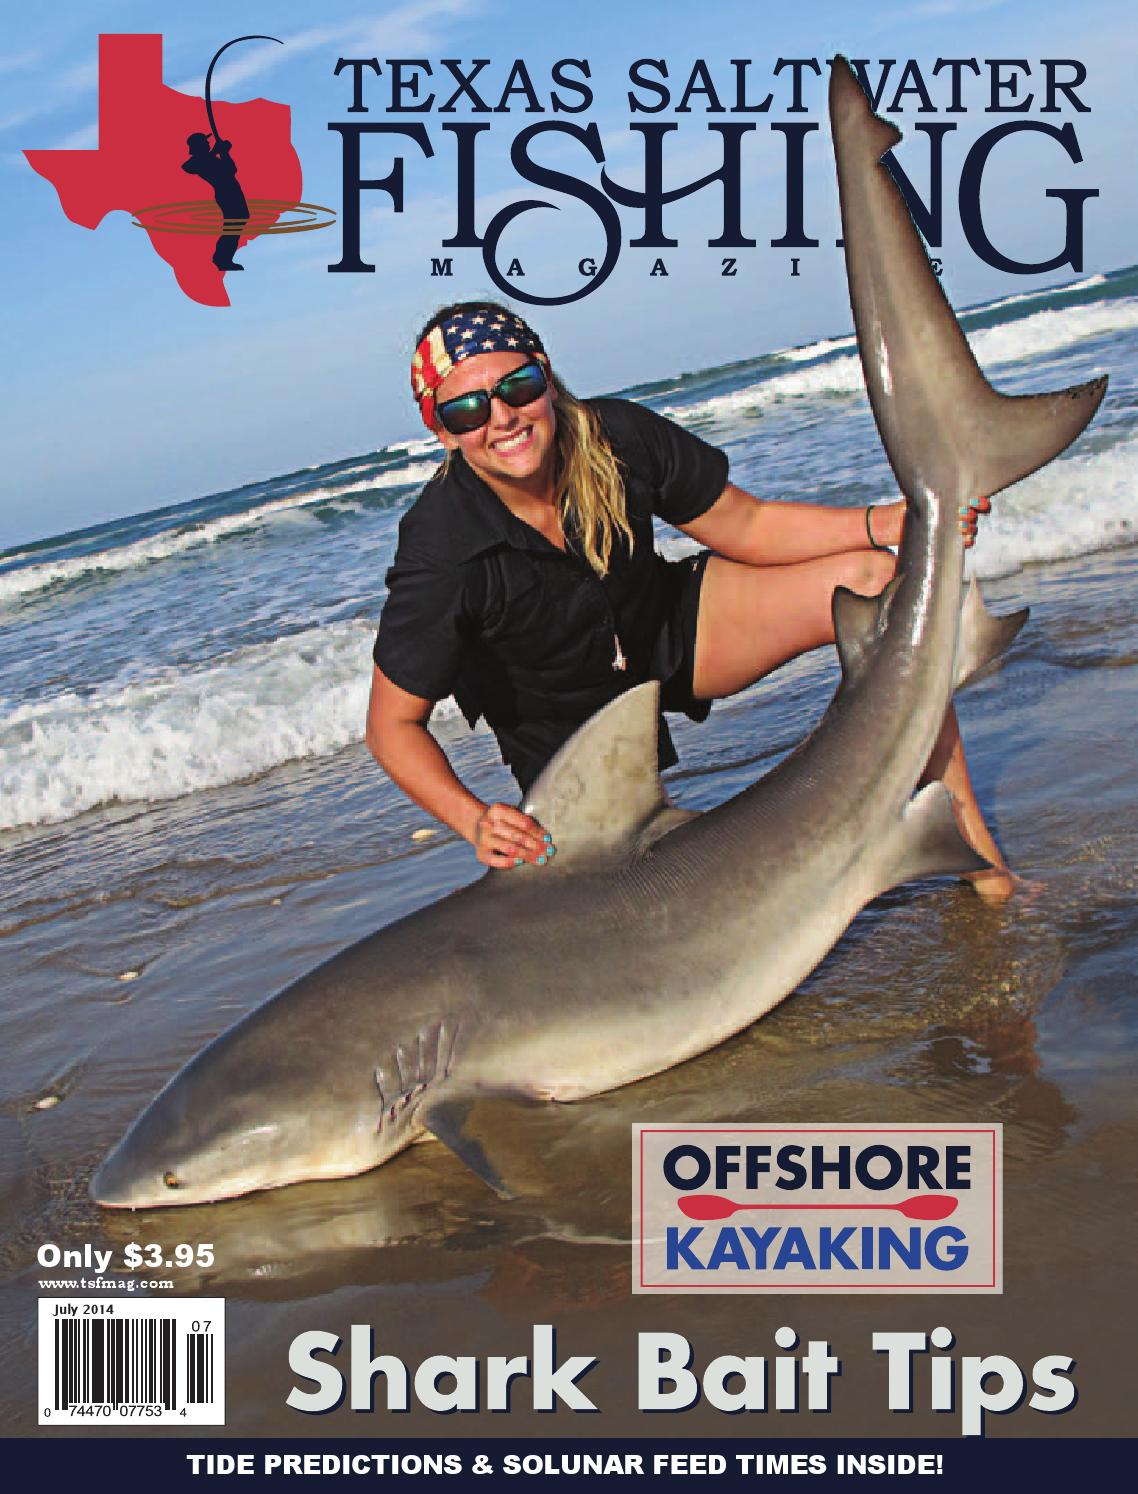 July 2014 by texas salwater fishing magazine issuu for Texas saltwater fishing magazine